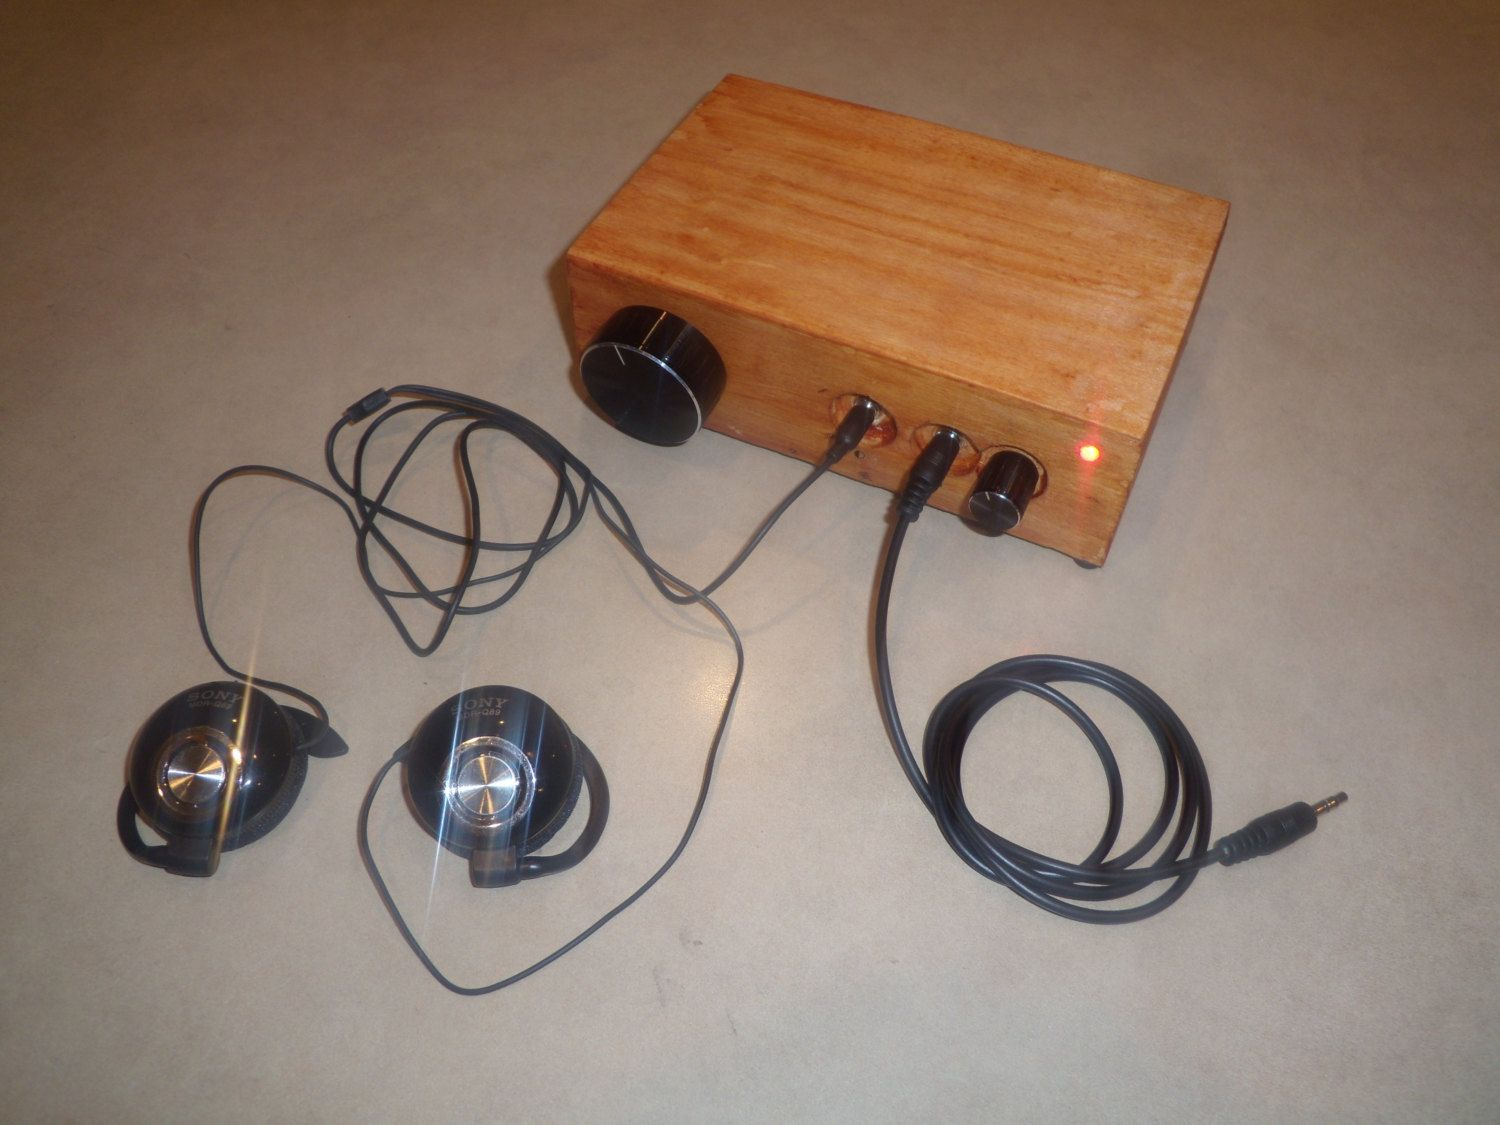 73f3512bf4f68976e03f9e7e9b1a3b85 139 best headphone amplifier 耳机放大器 images on pinterest  at gsmx.co